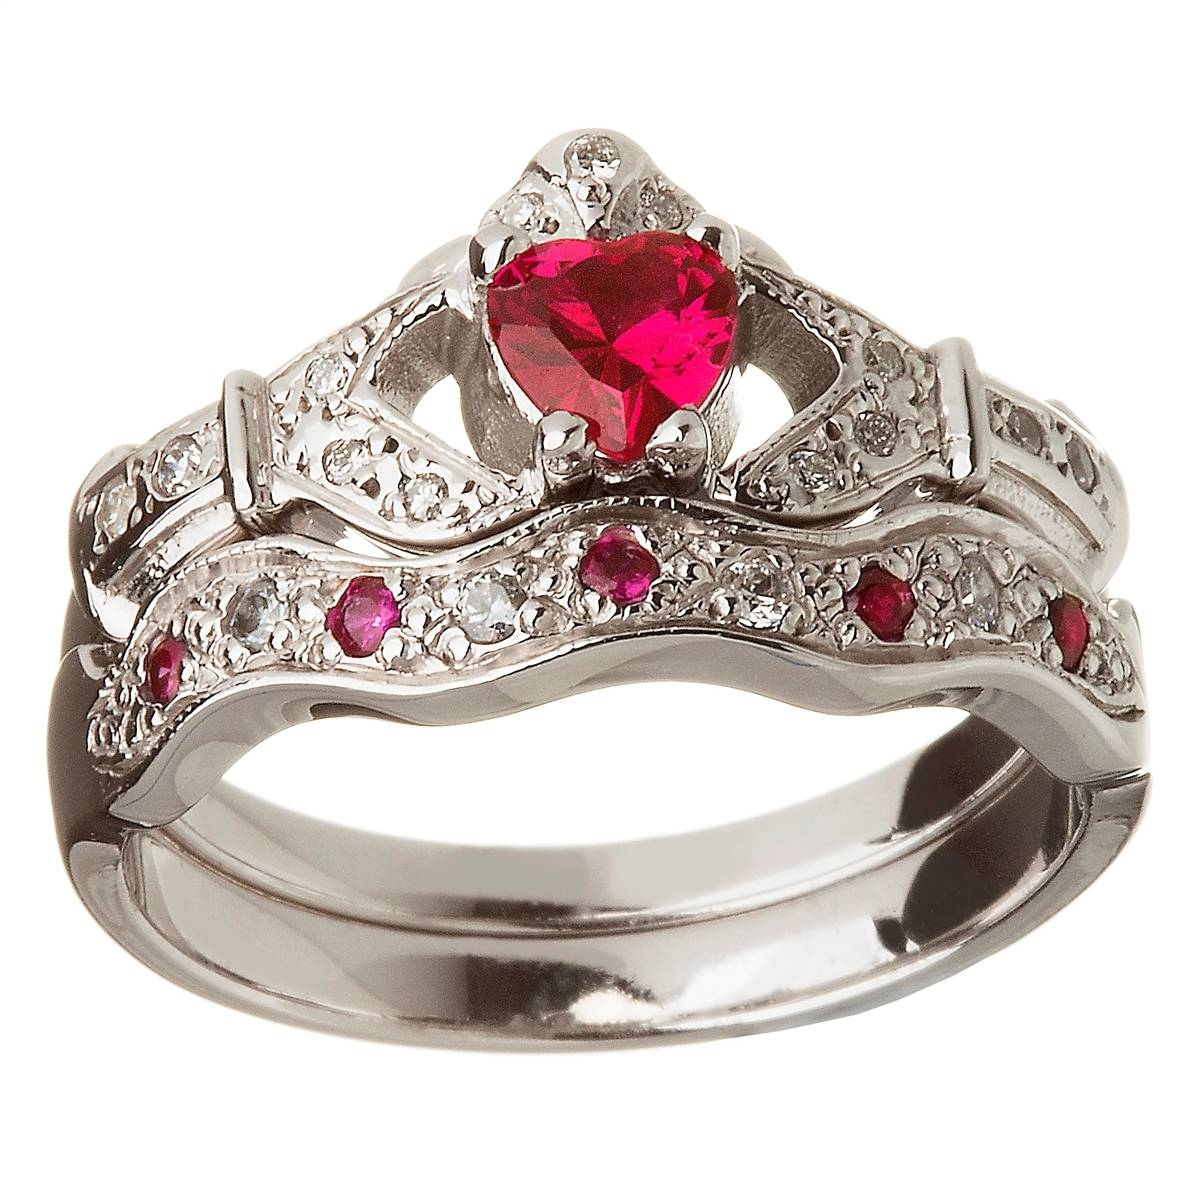 14K White Gold Ruby Set Heart Claddagh Ring & Wedding Ring Set With Claddagh Rings Engagement Sets (Gallery 6 of 15)